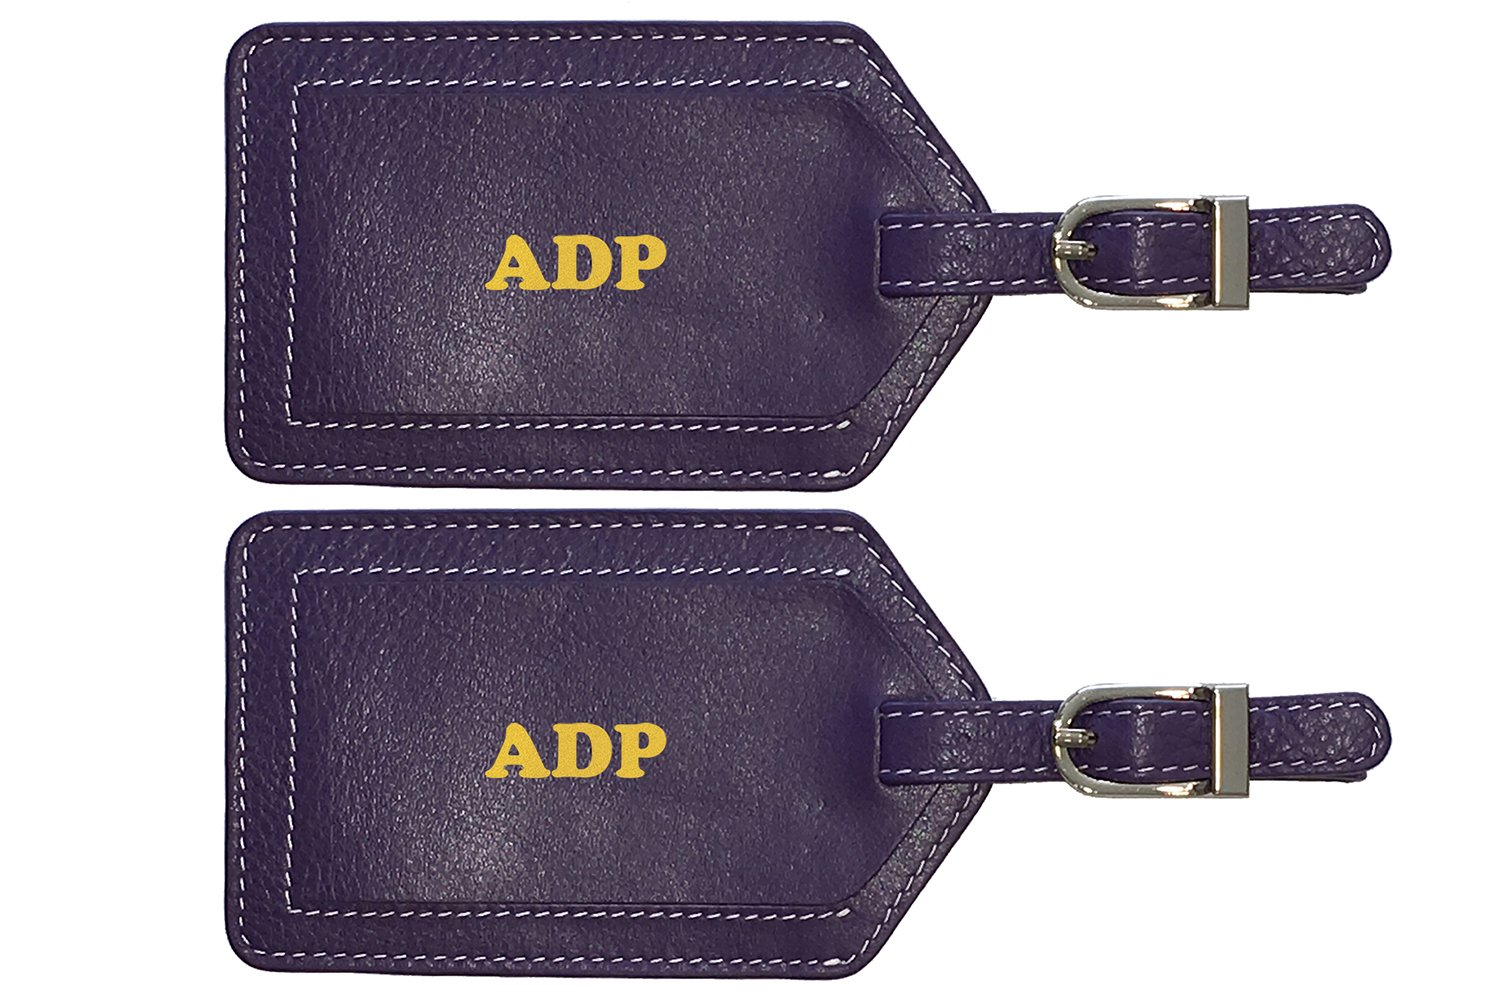 Personalized Monogrammed Dark Purple Leather Luggage Tags - 2 Pack